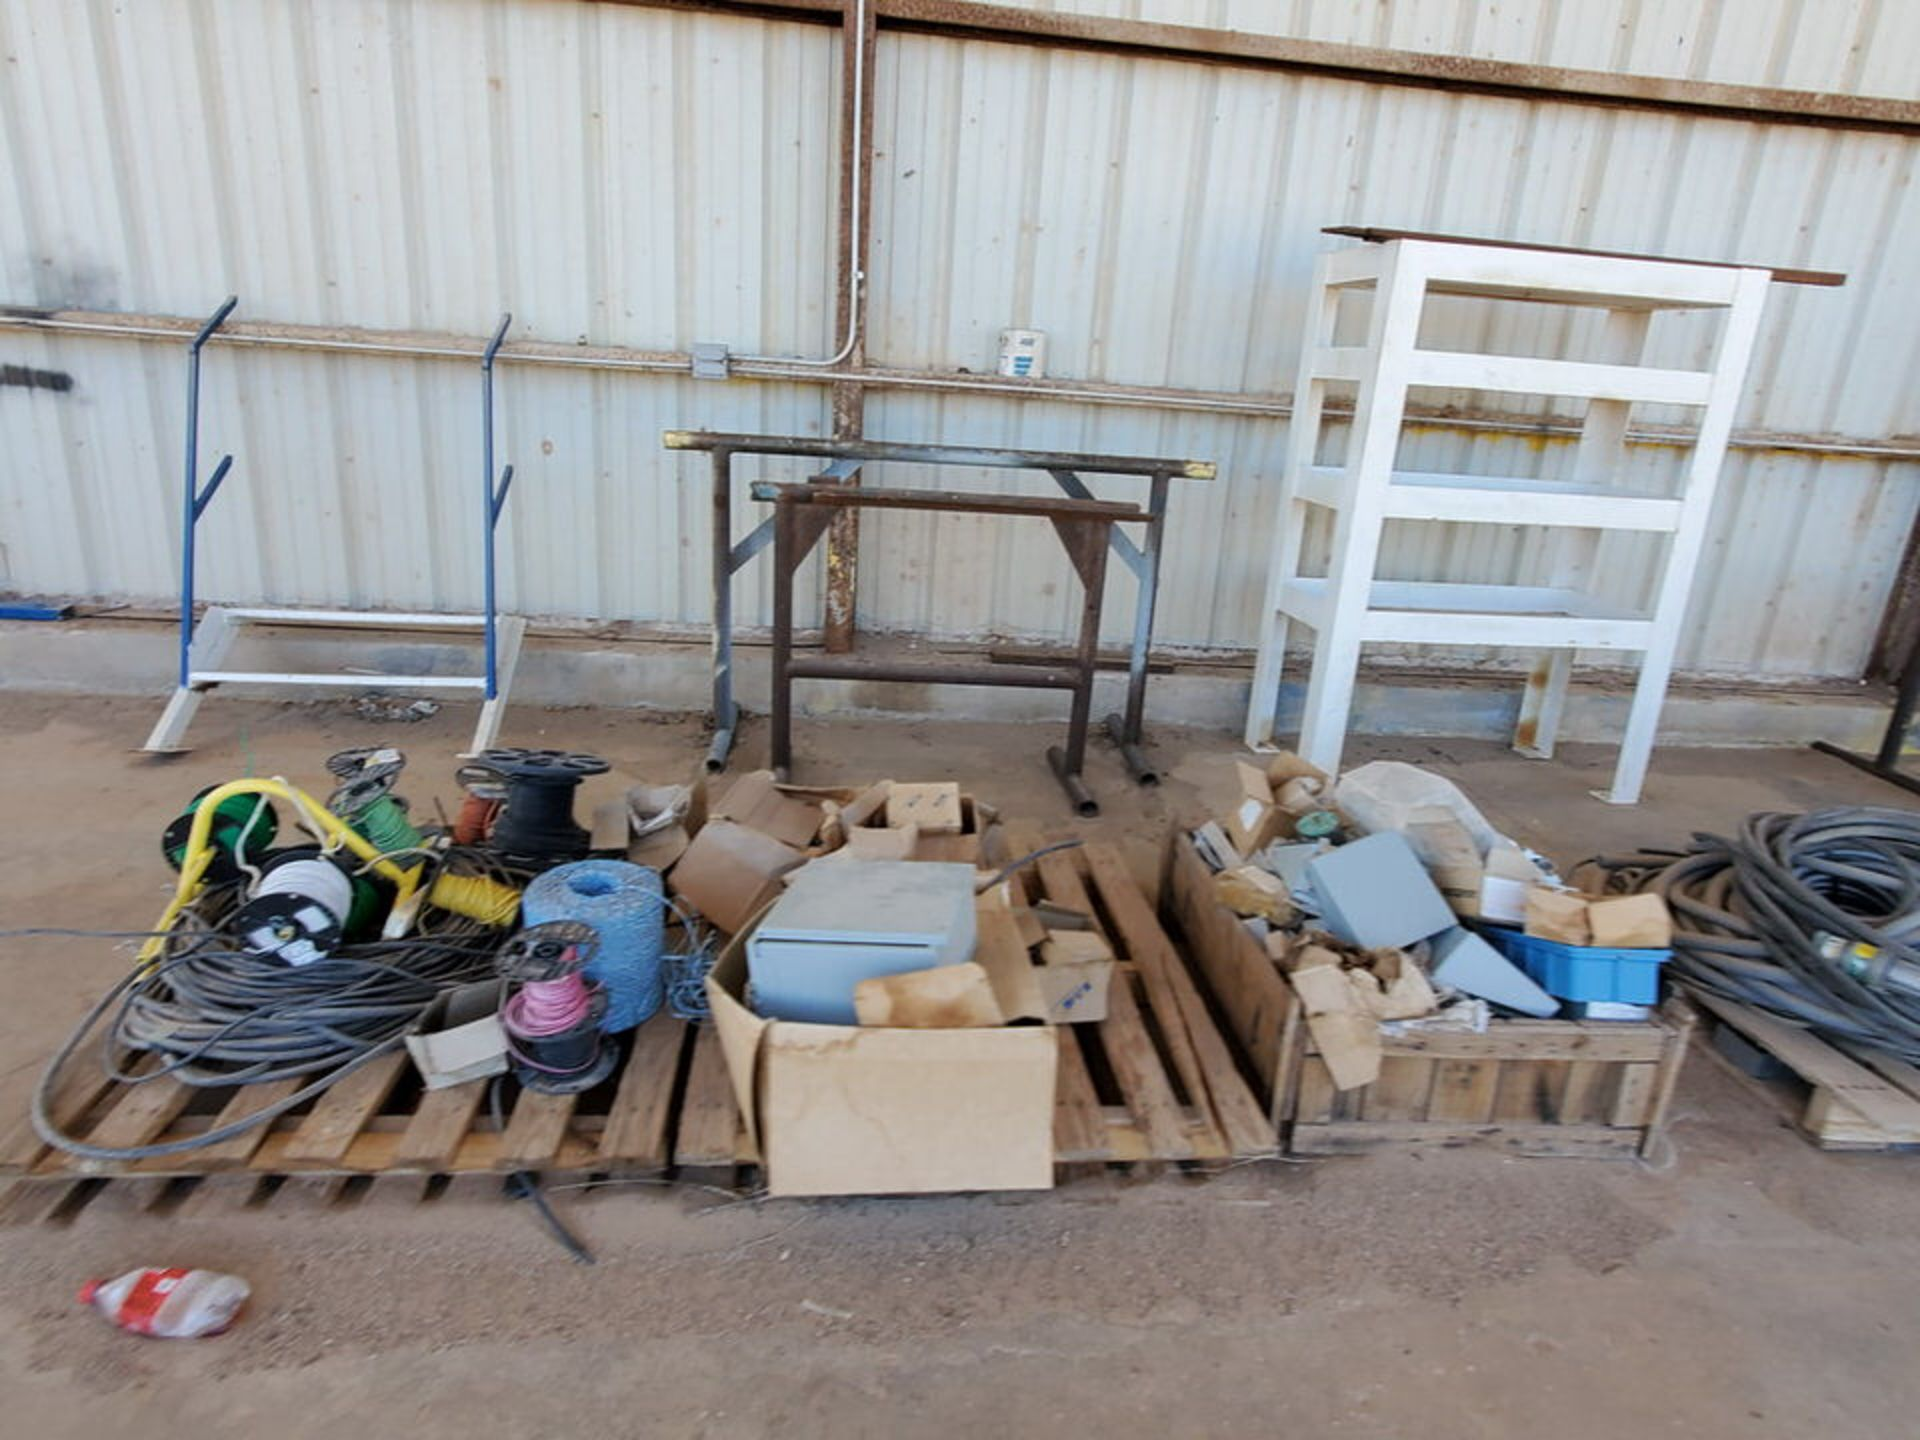 Misc. Matl. To Include But Not Limited To: Lift Basket, Welding Table, Sheet Metal, Ele Wire, Rope - Image 9 of 13